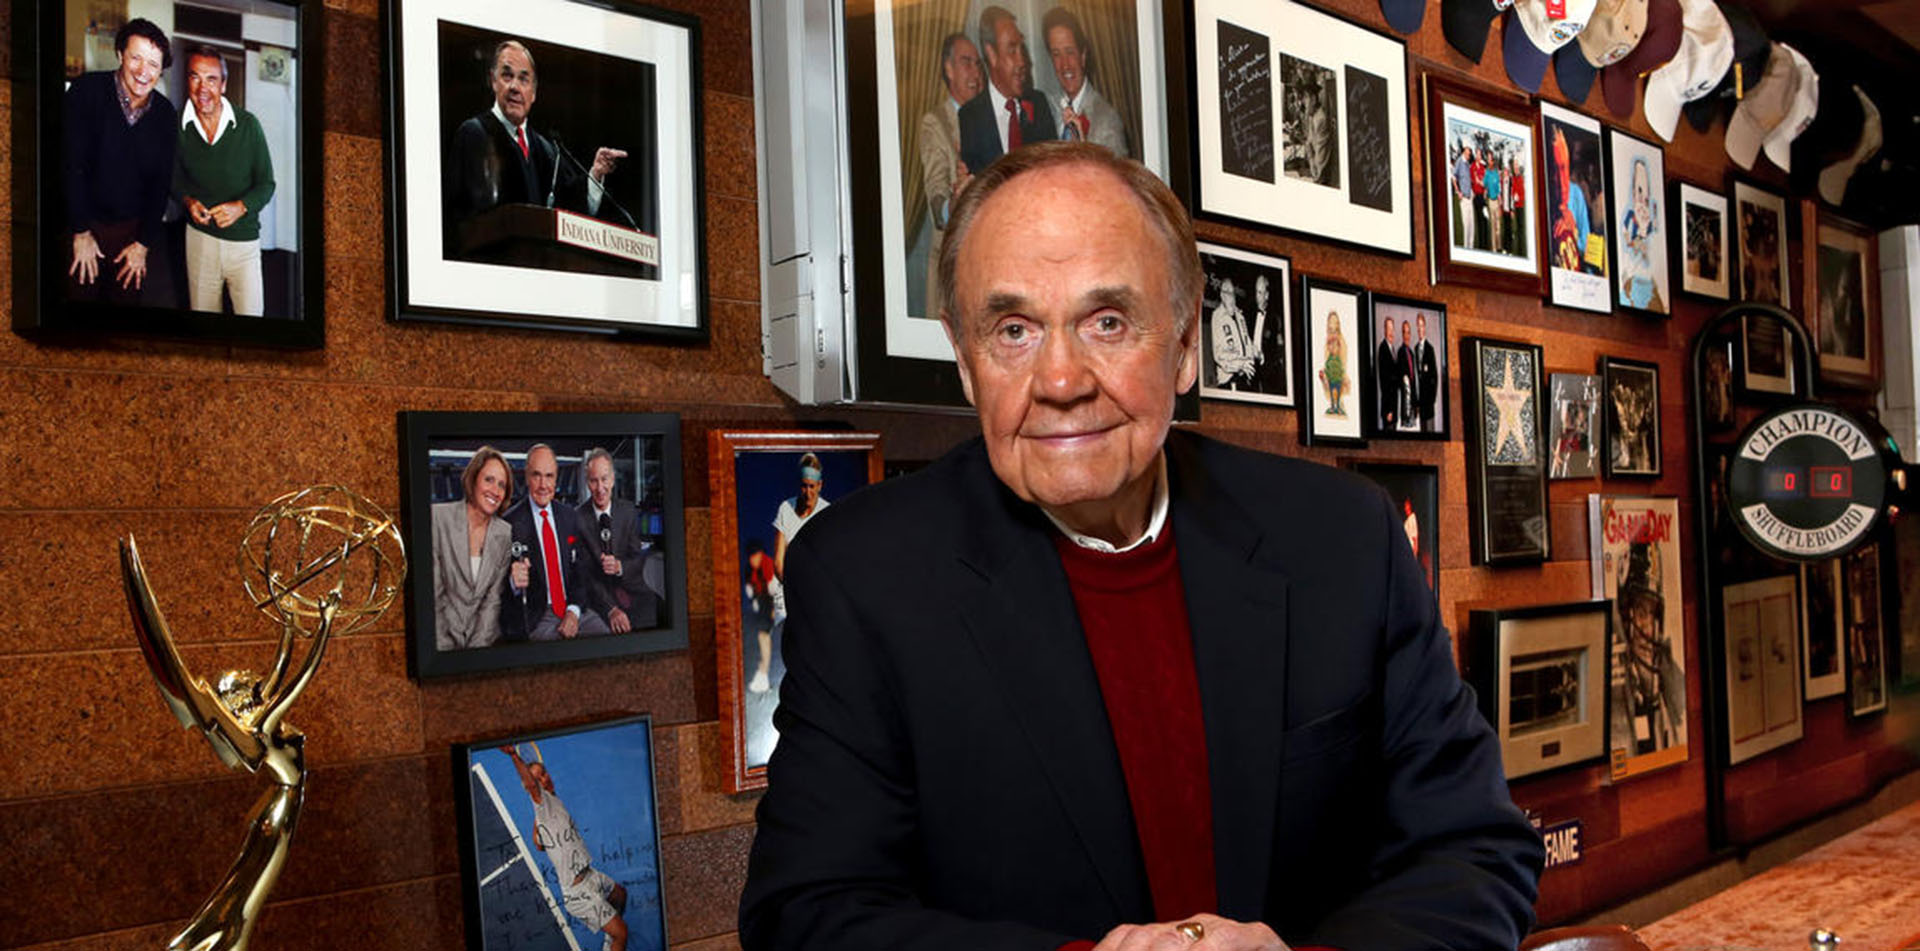 Dick Enberg NBC CBS ESPN sportscaster at home in his man cave with trophies and awards